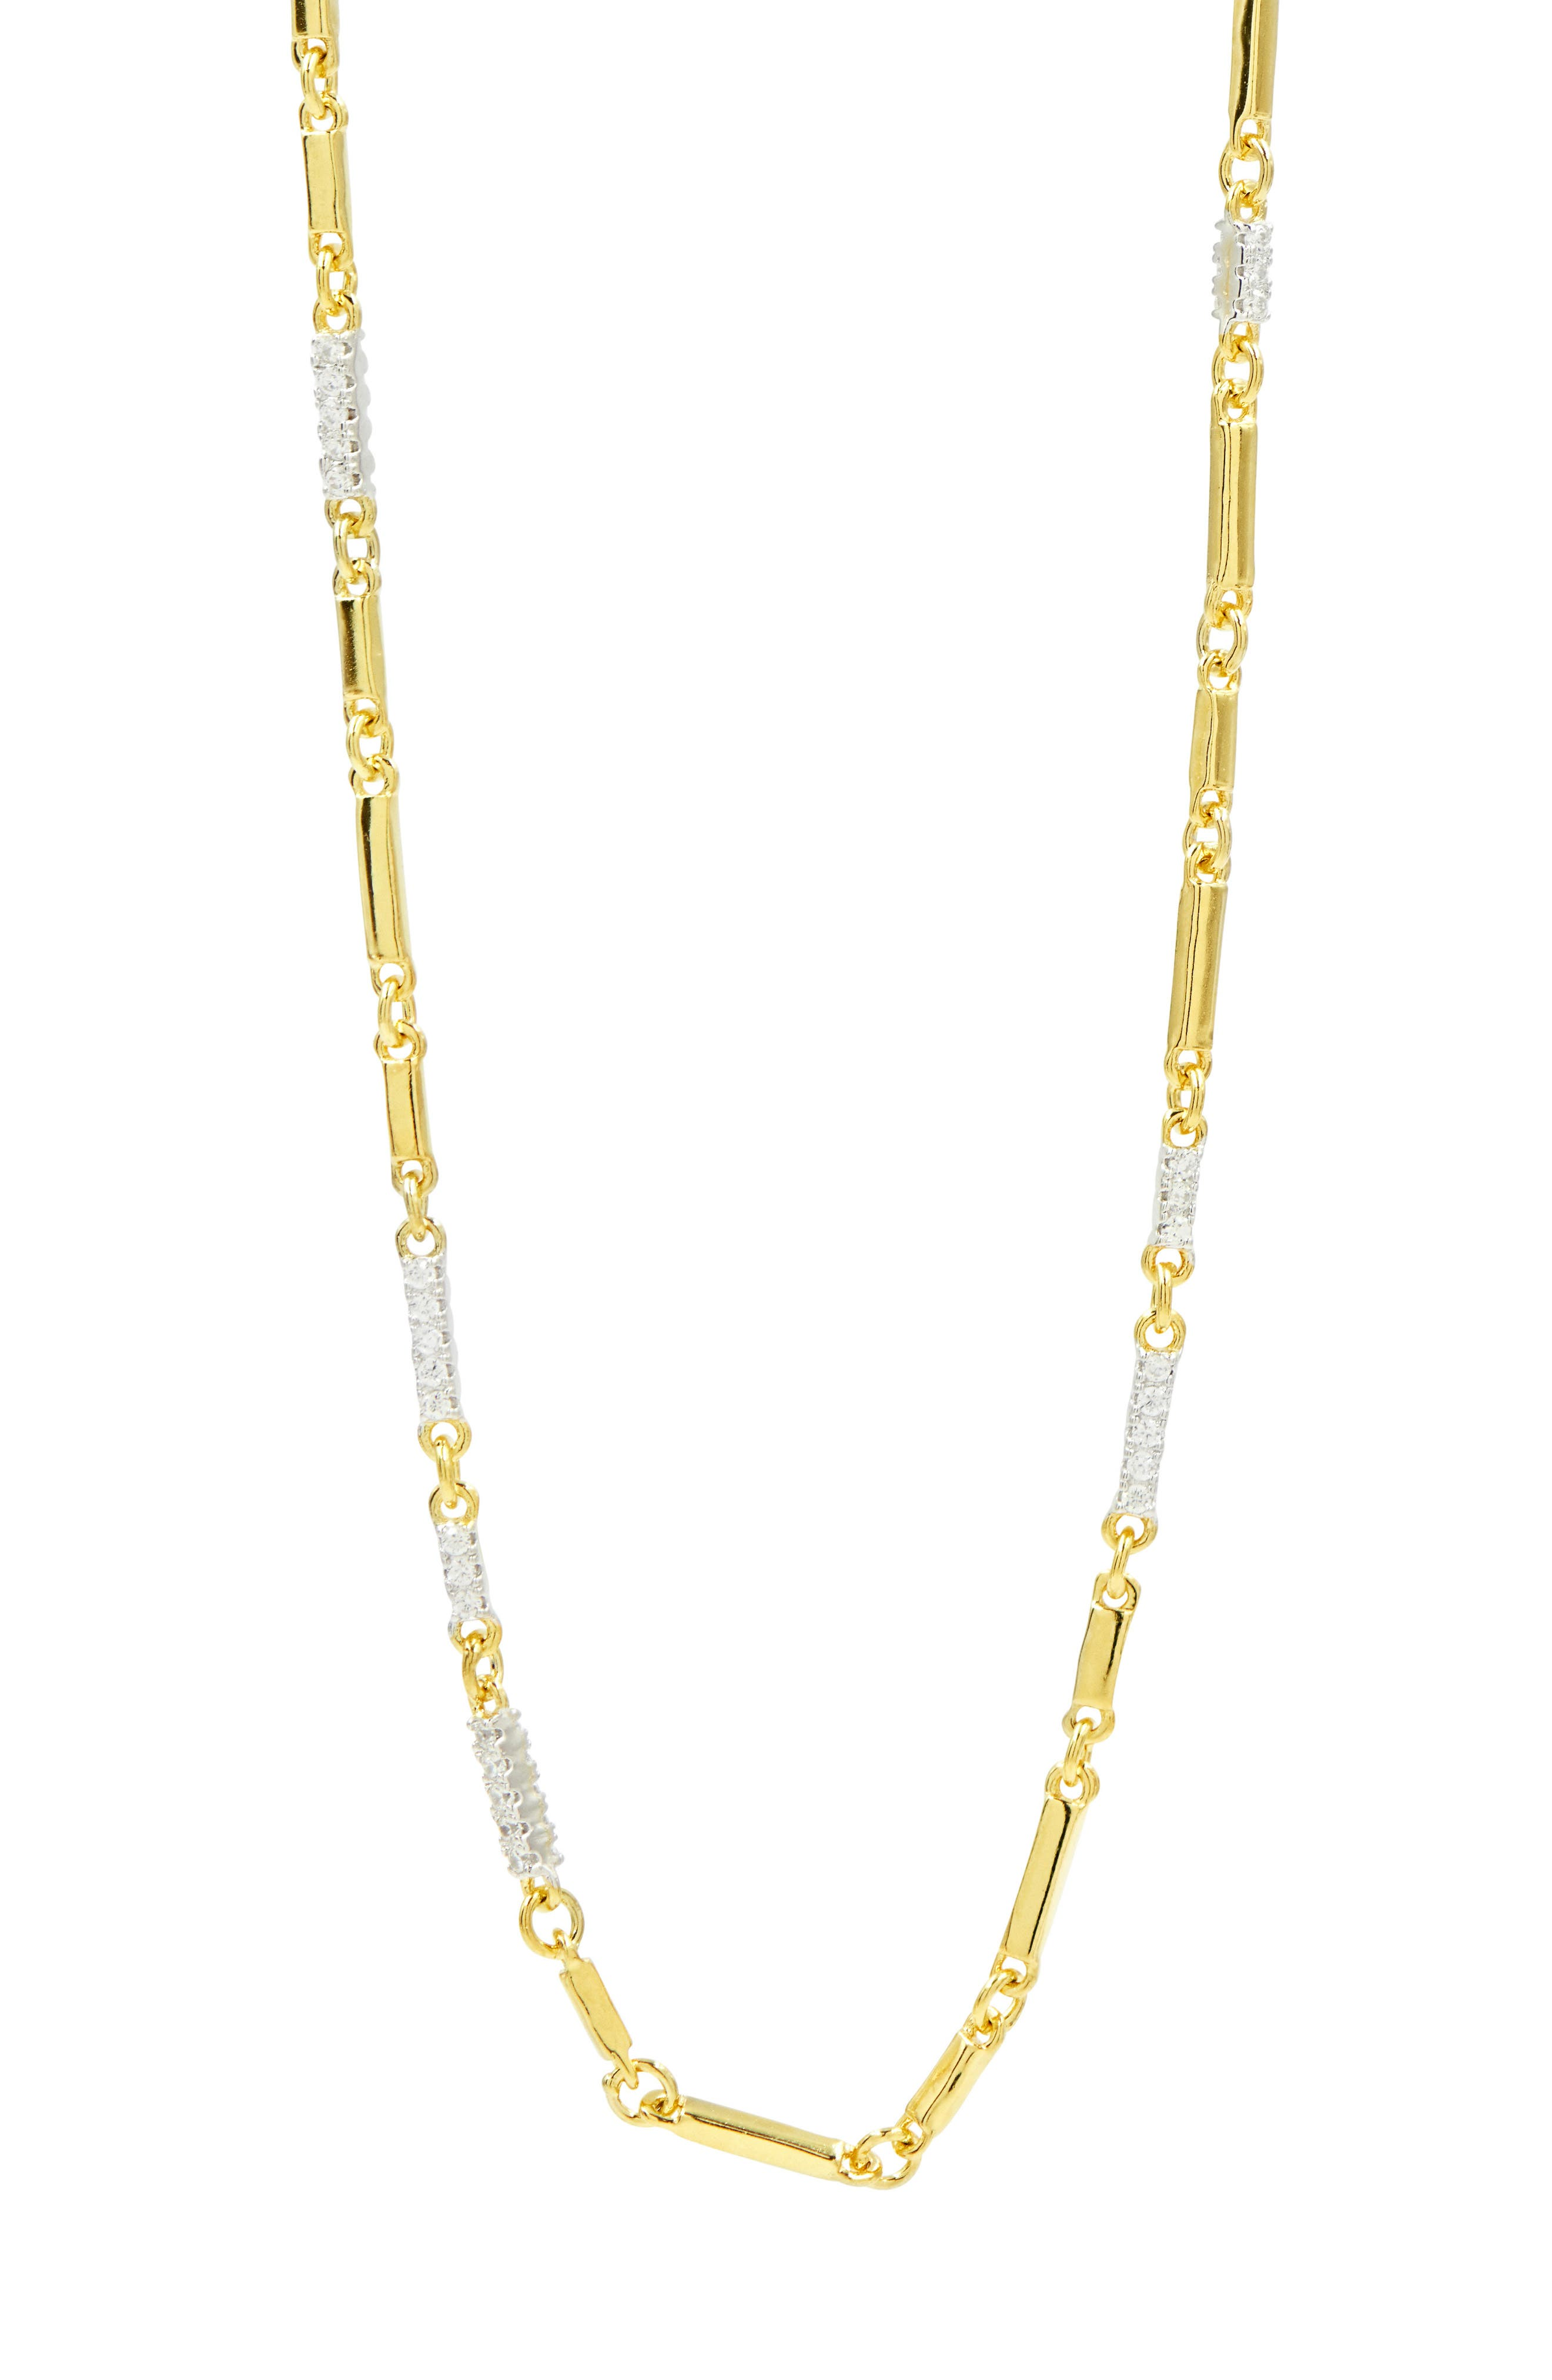 Radiance Cubic Zirconia Chain Necklace,                             Main thumbnail 1, color,                             Silver/ Gold